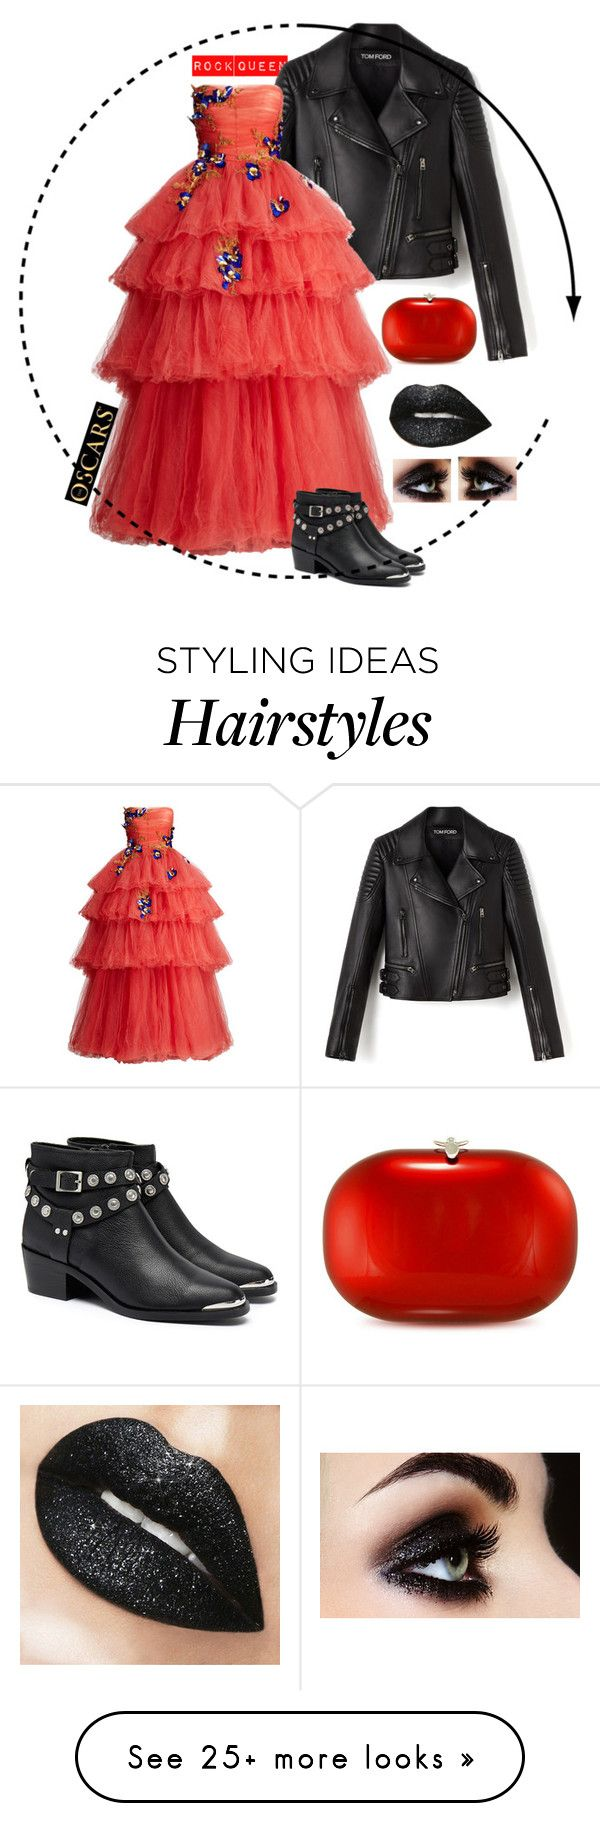 """""""Rock Queen at the Oscars"""" by tina-pencinger on Polyvore featuring Monique Lhuillier, Senso and Jeffrey Levinson"""